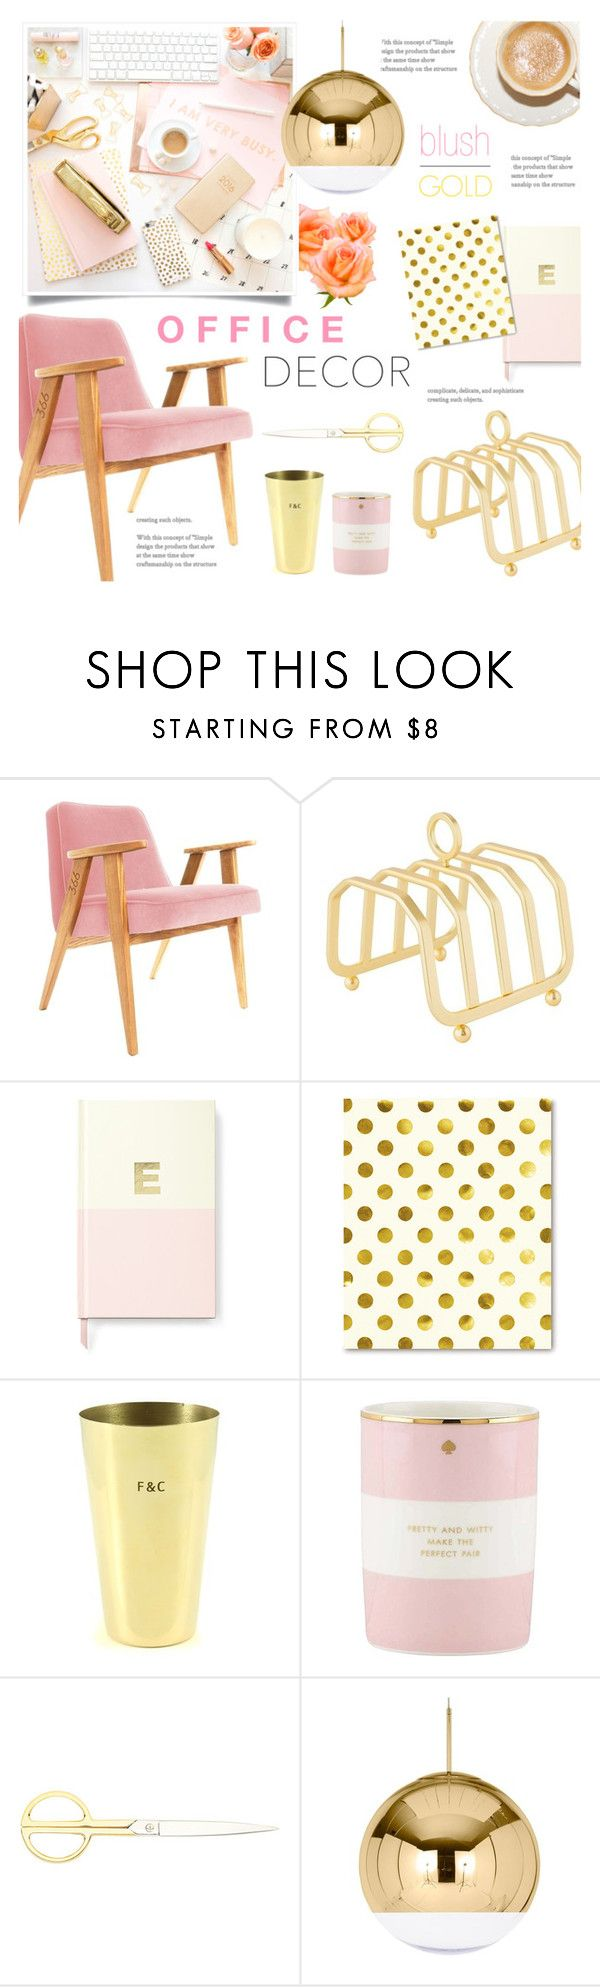 """""""Blush and Gold Office Decor"""" by alexandrazeres on Polyvore featuring interior, interiors, interior design, home, home decor, interior decorating, Sugar Paper, Kate Spade, Fine & Candy and HAY"""